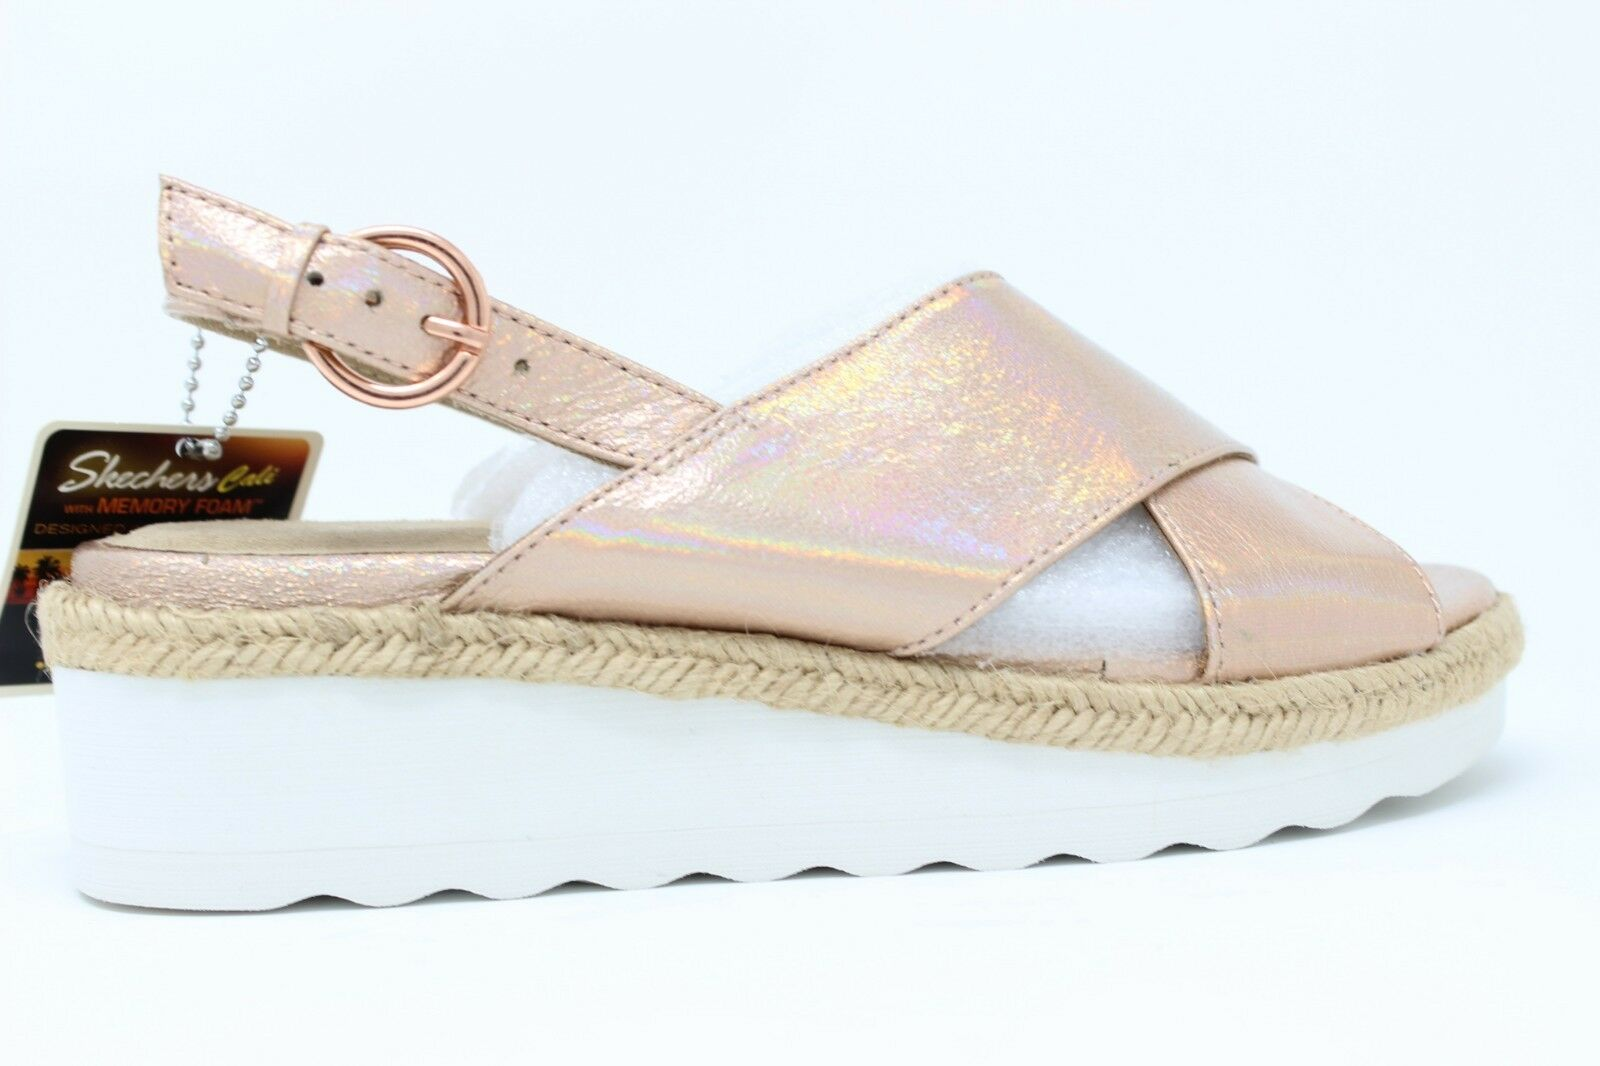 Skechers Cali Women's Refreshers pink gold 31788 RSGD With Memory Foam